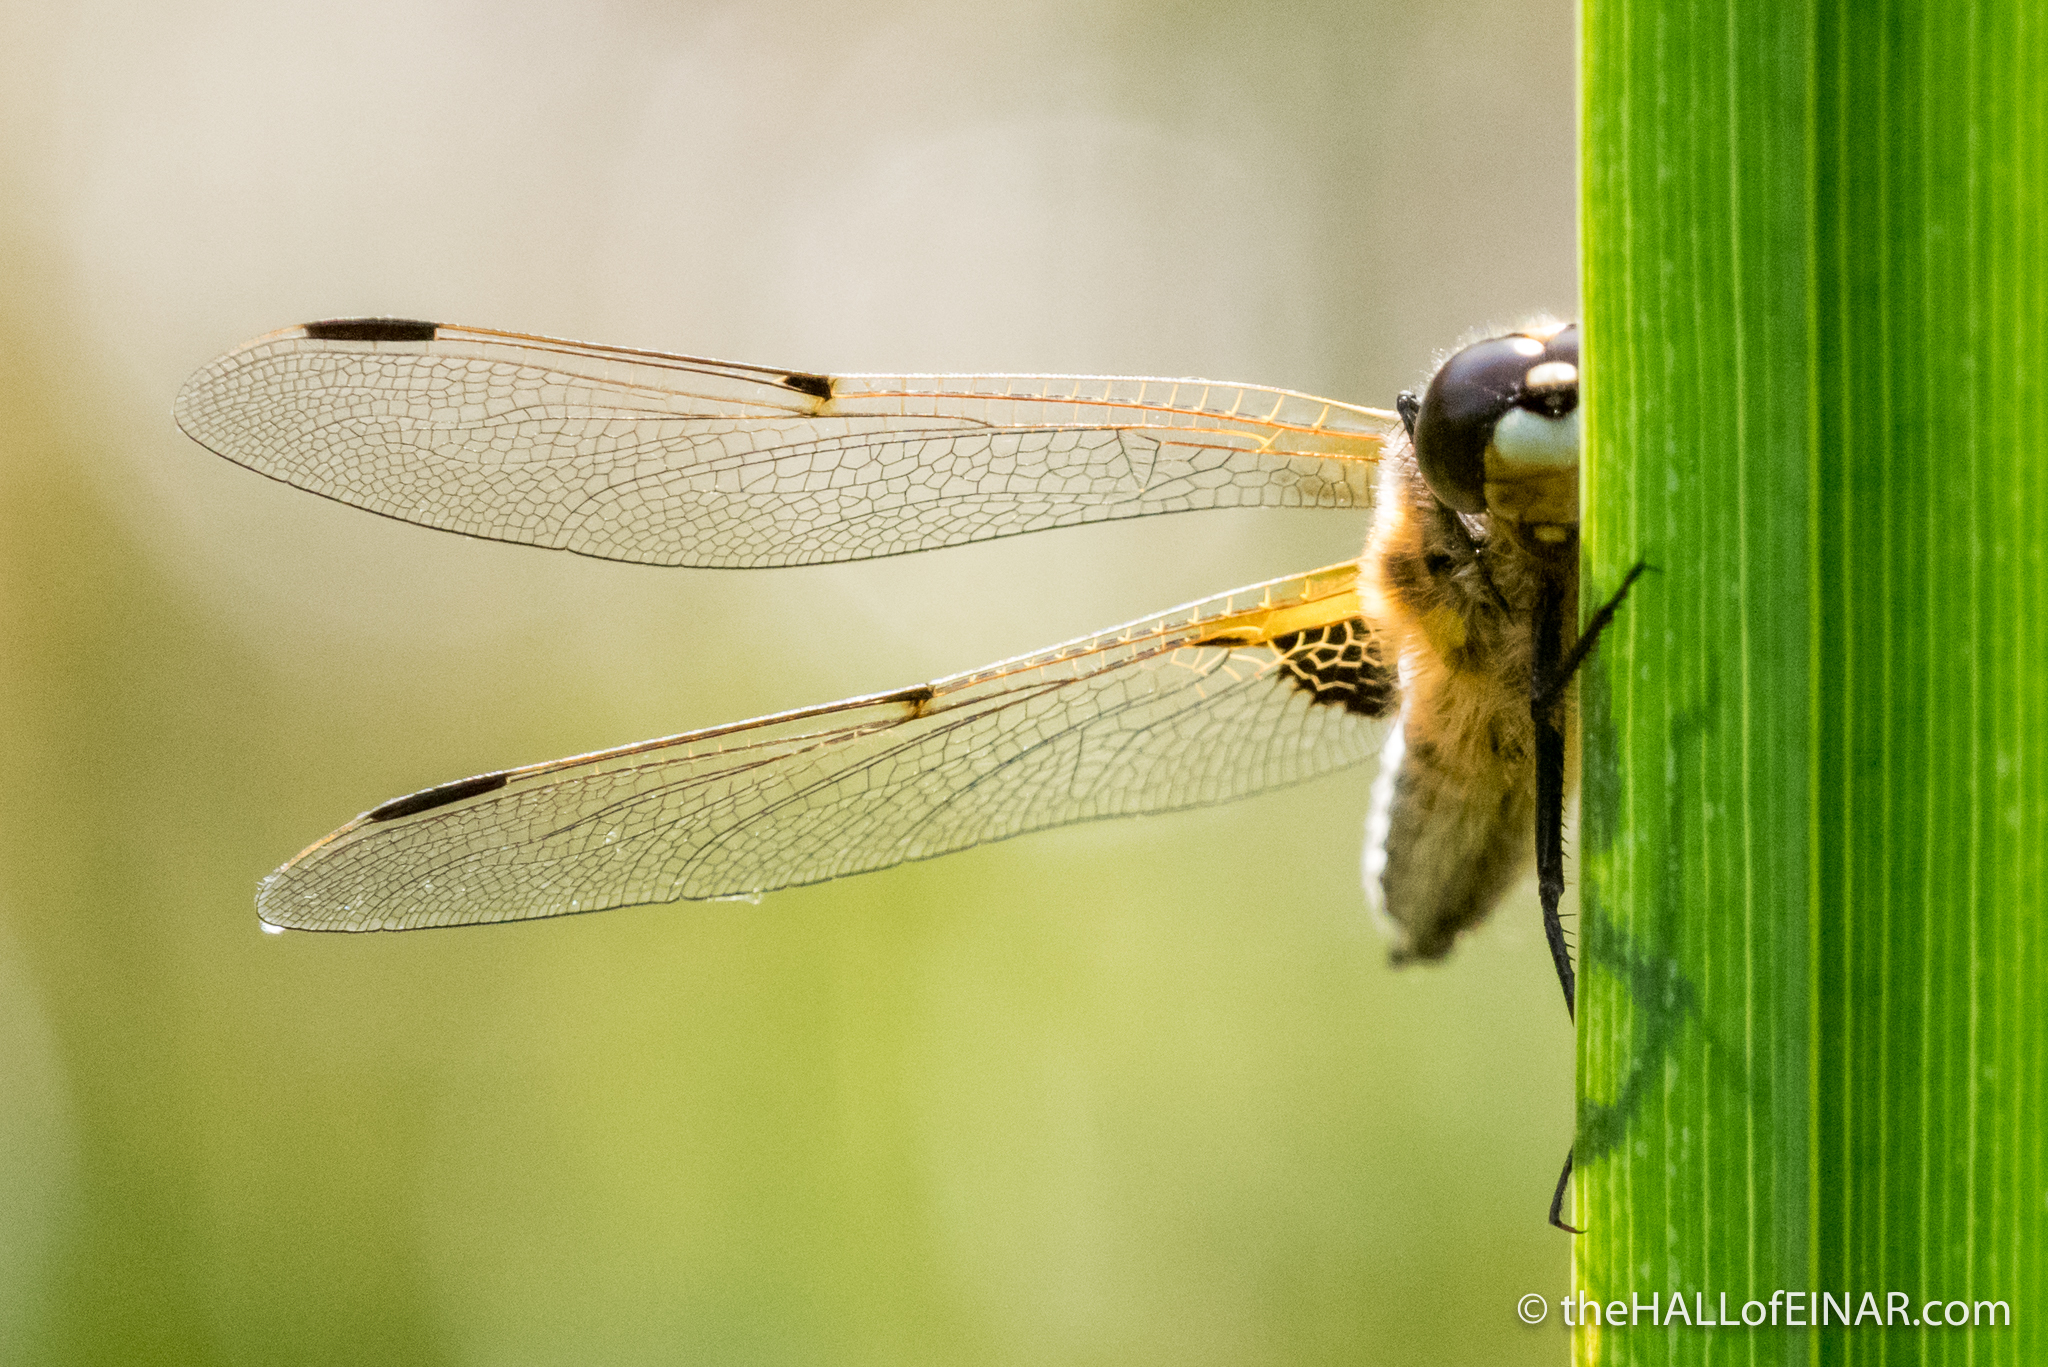 Four-Spotted Chaser - The Hall fo Einar - photograph (c) David Bailey (not the)